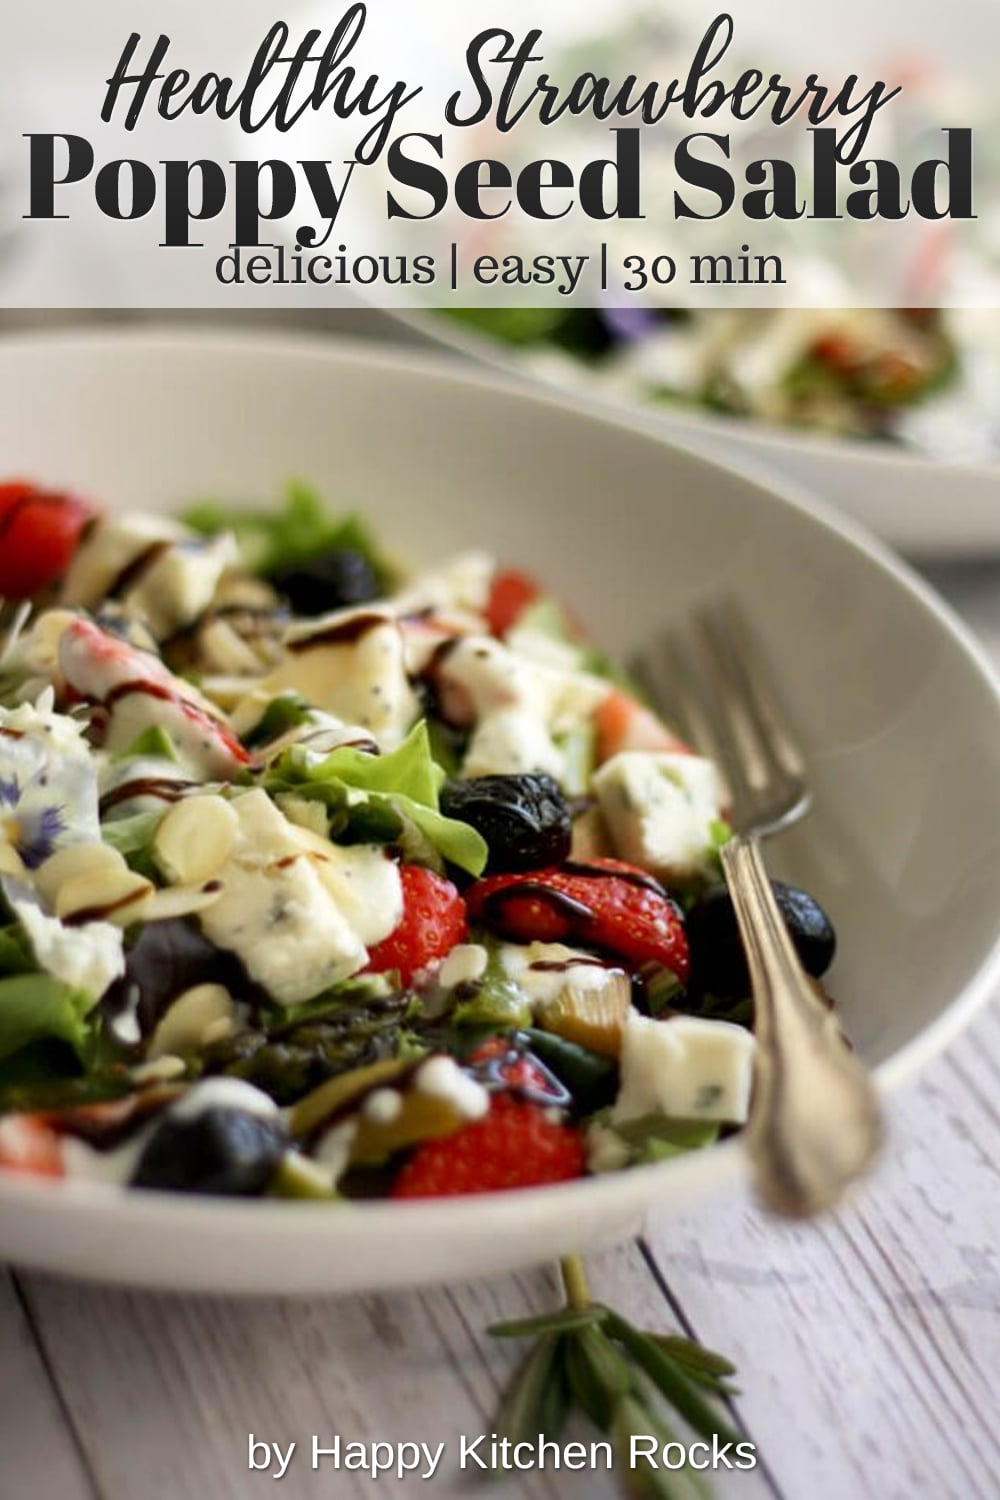 Strawberry Poppy Seed Salad with Asparagus and Rhubarb Collage with Text Overlay